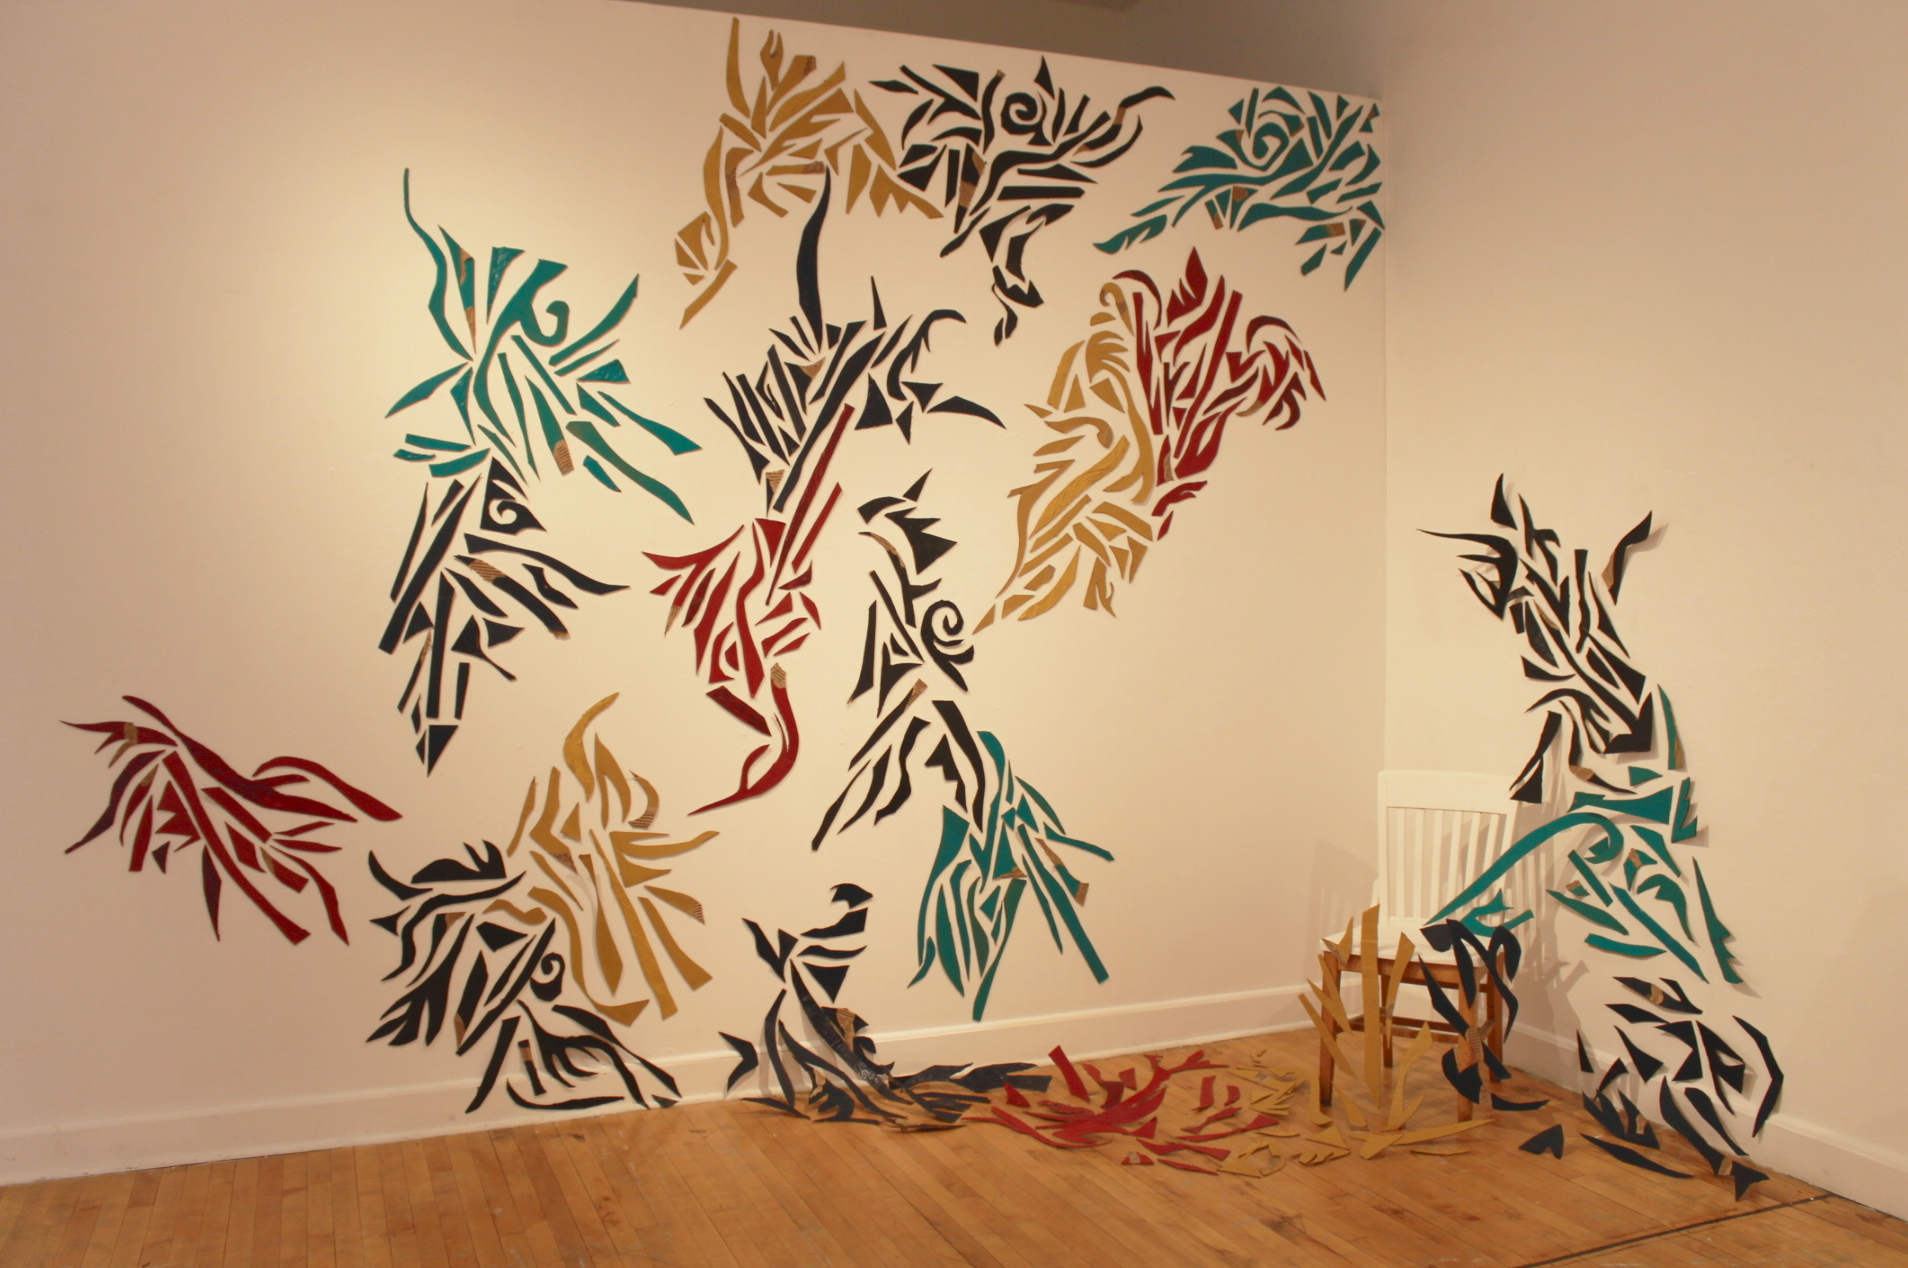 Summertime Sublime  2014 , acrylic, cardboard, wooden chair,10ft x 15ft